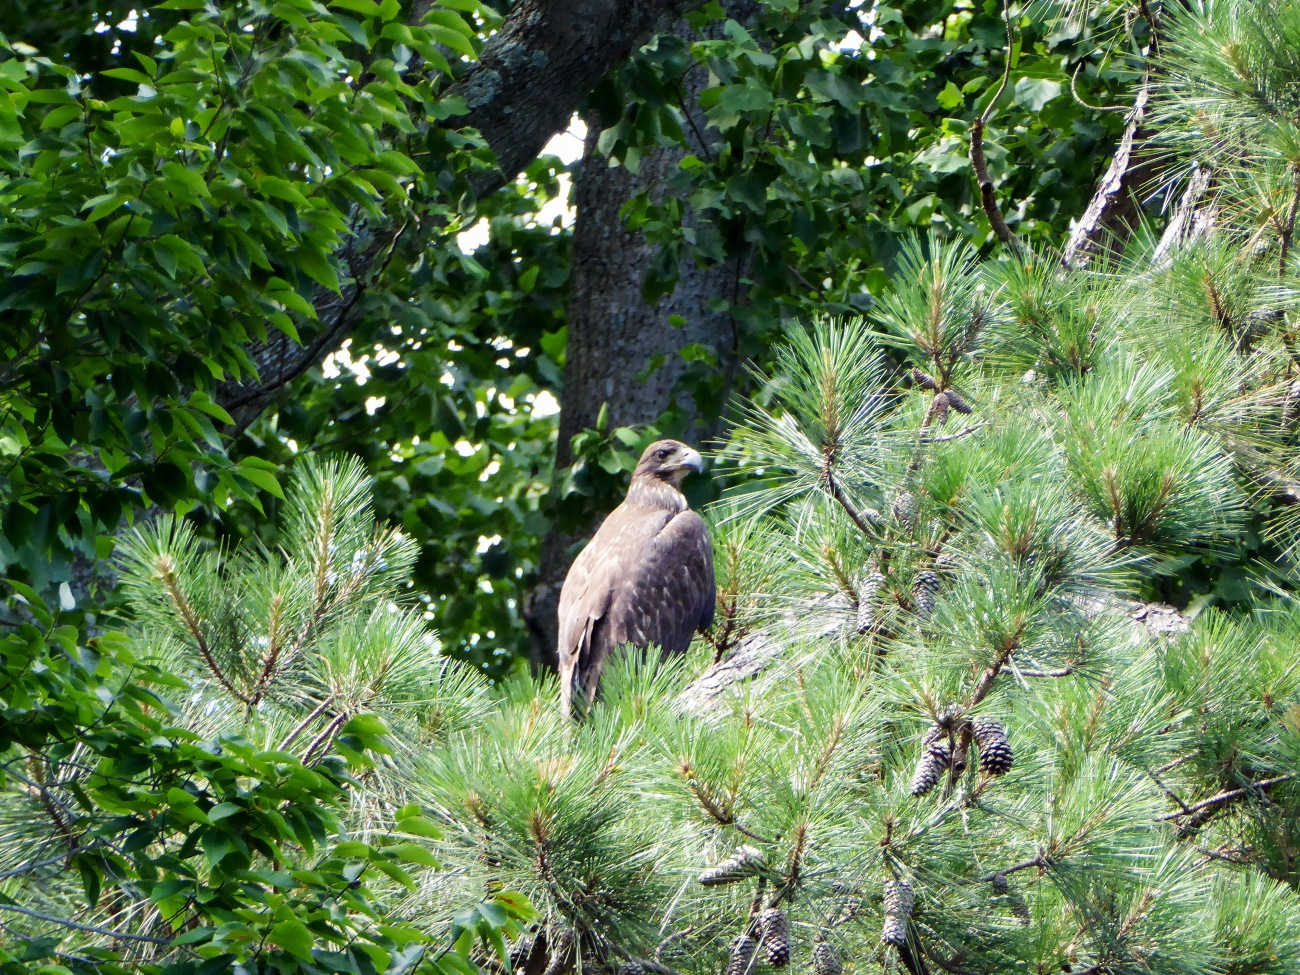 20160617_151648_Immature Bald Eagle